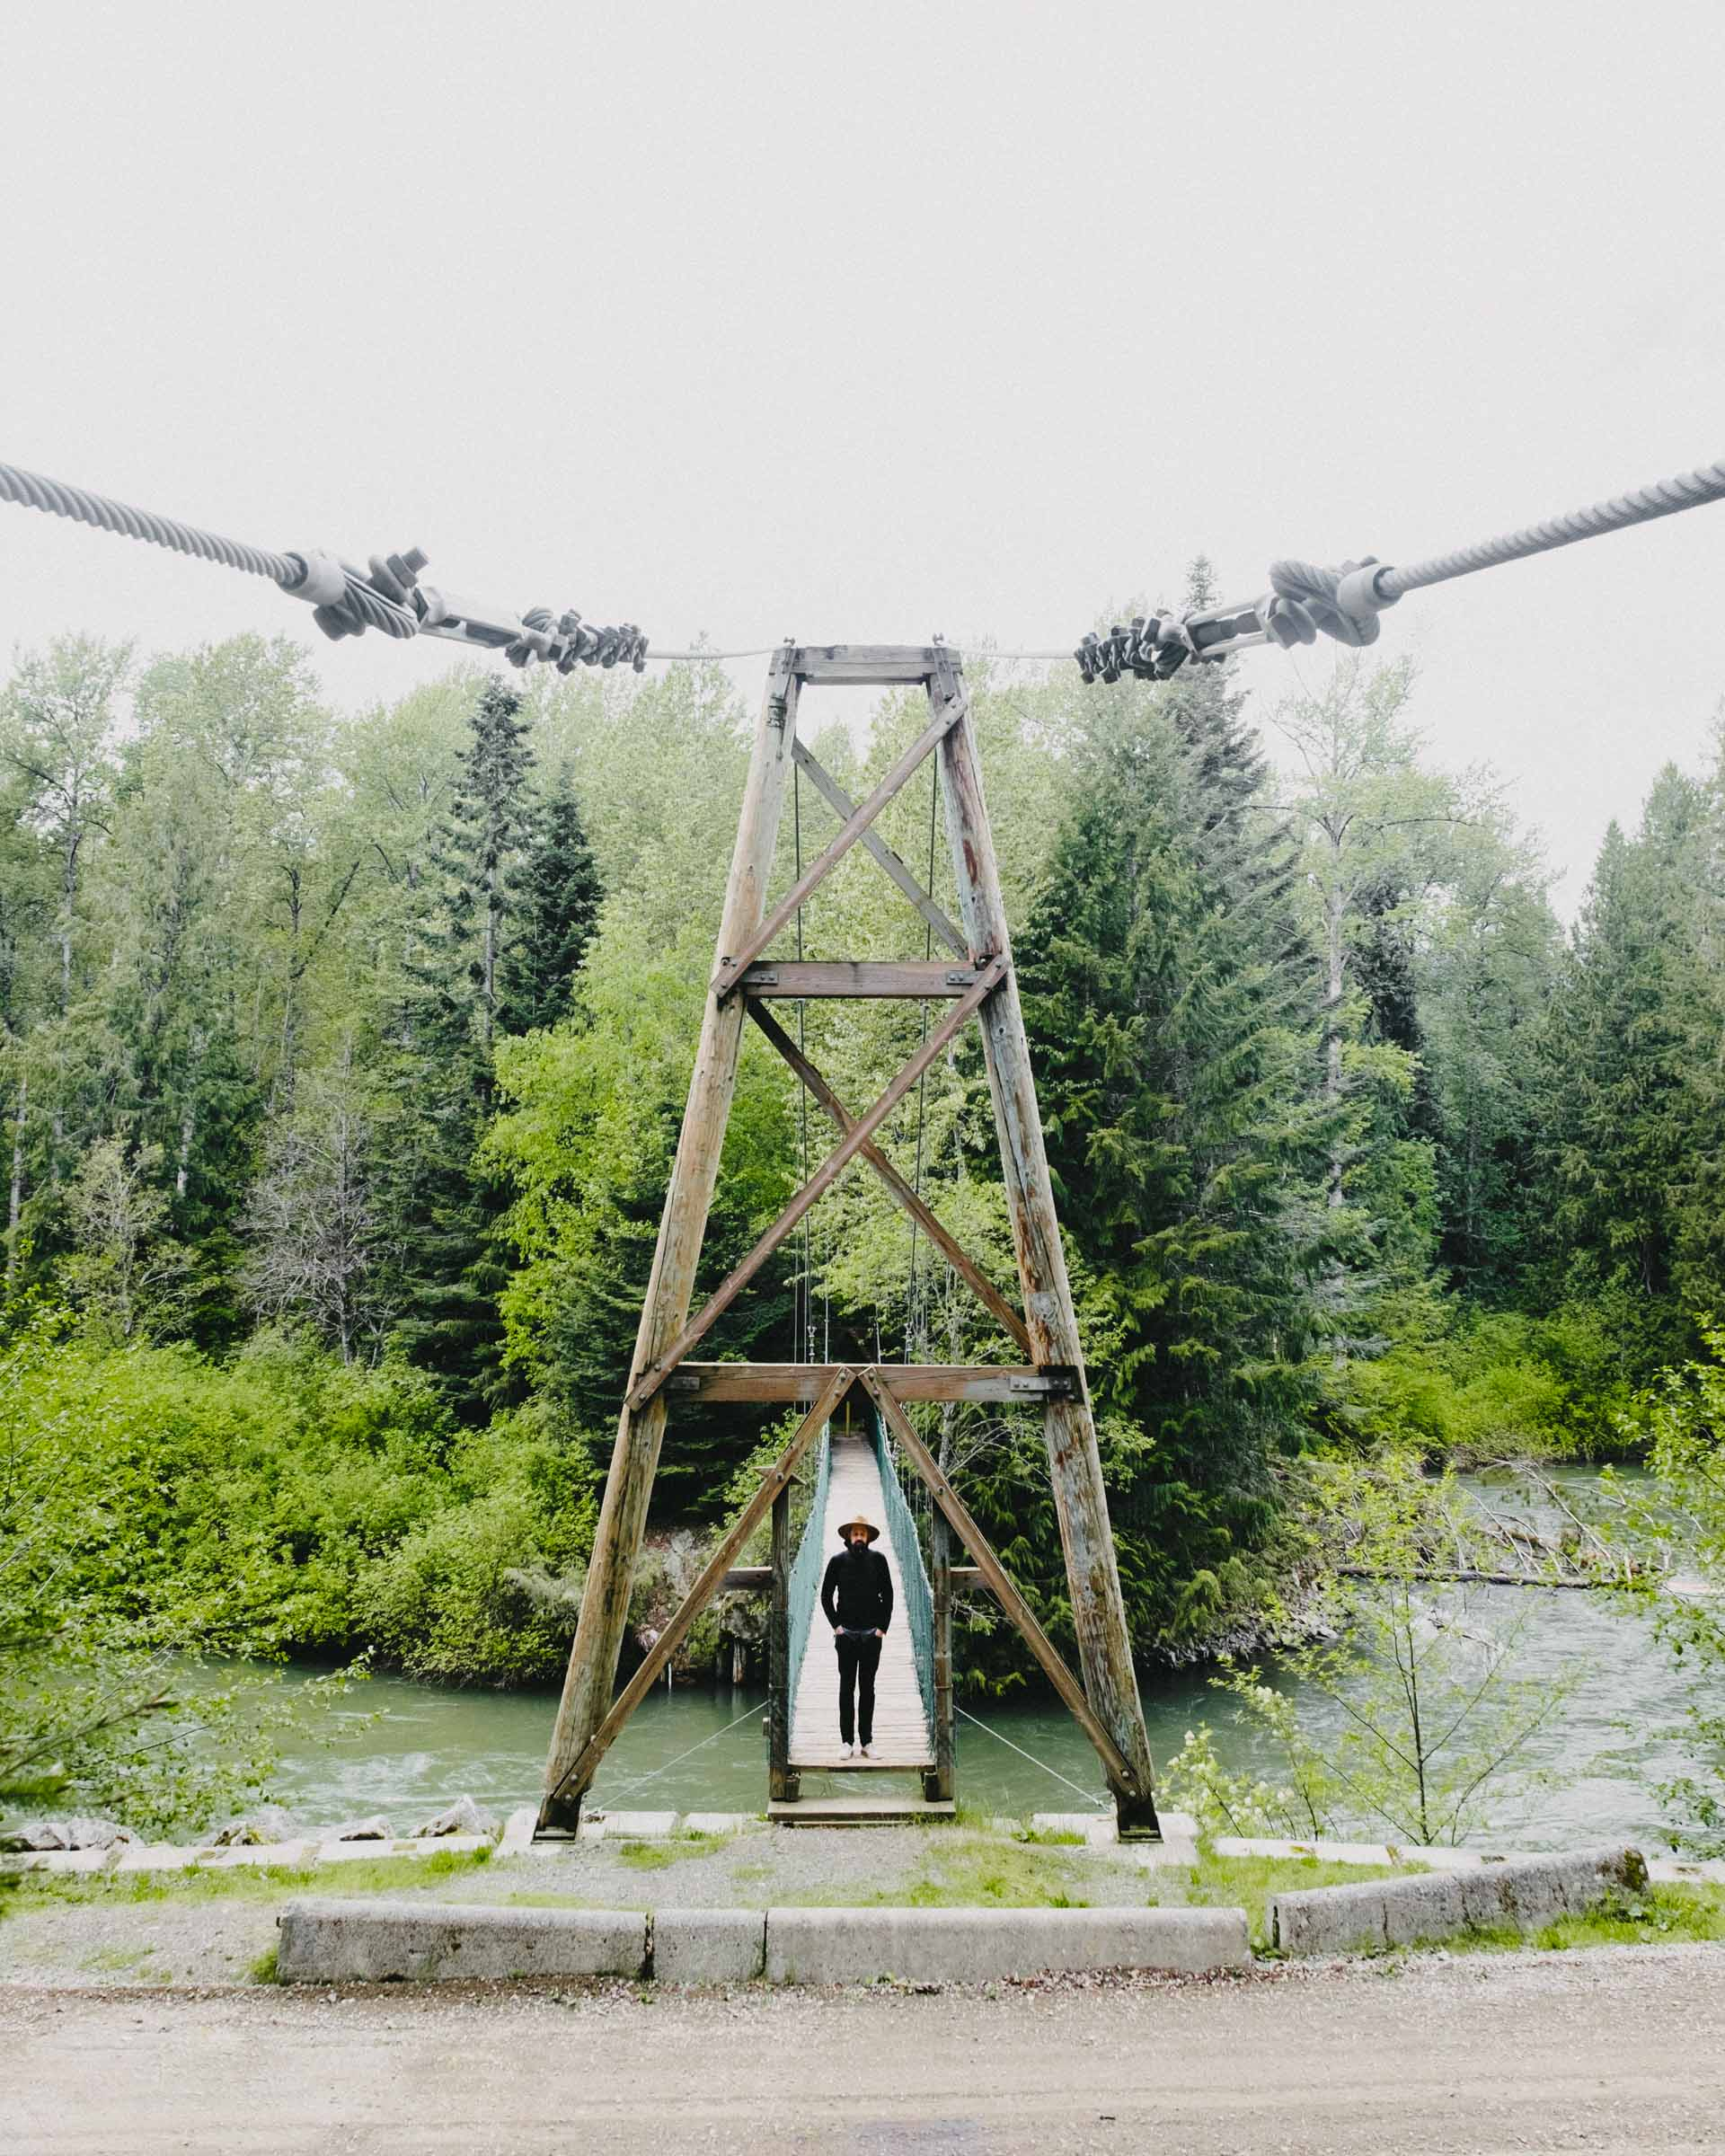 Suspension bridge in Skagit Valley Provincial Park